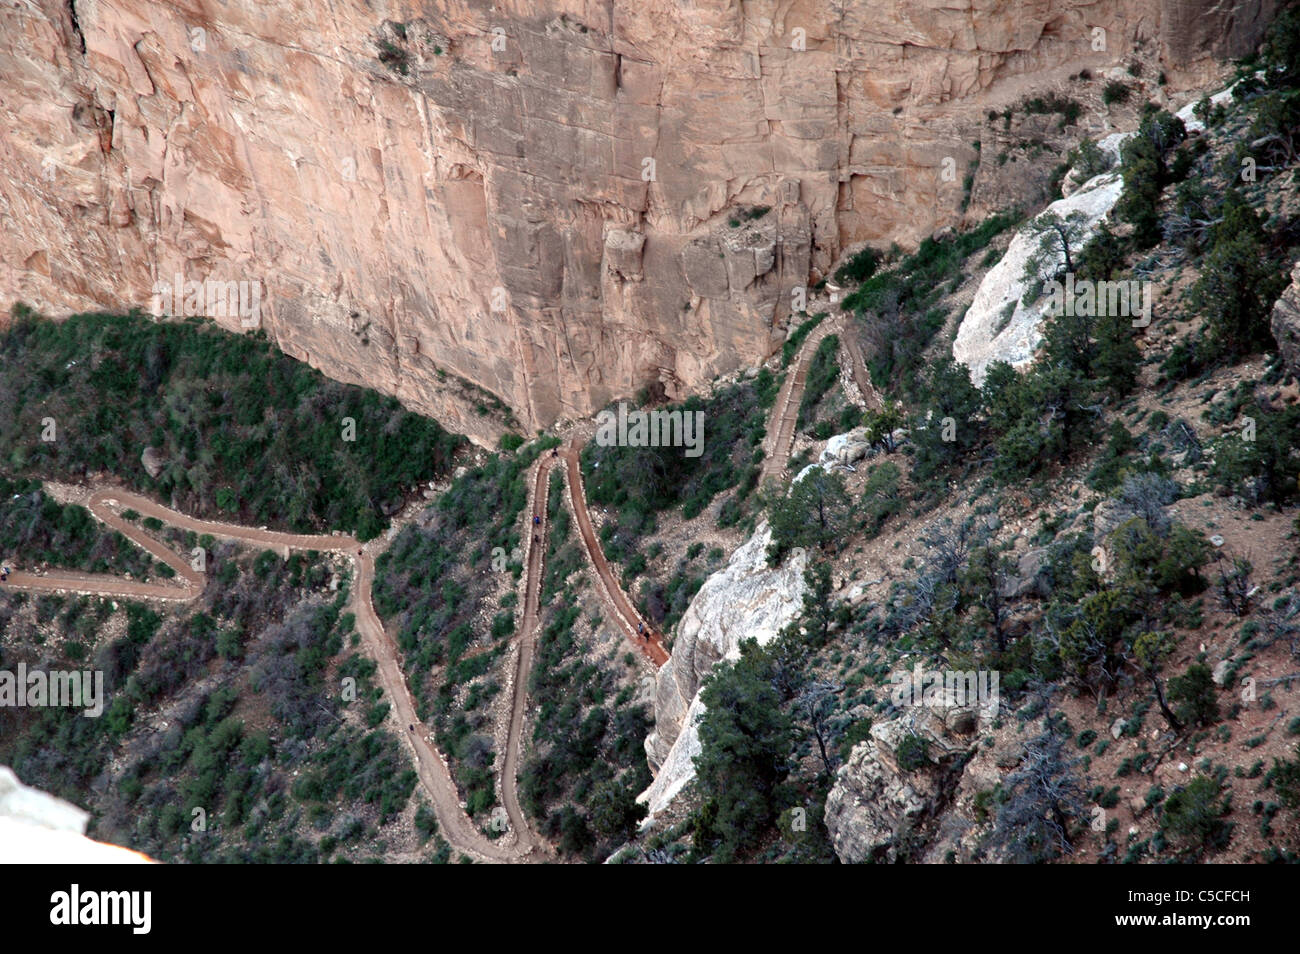 The Bright Angel Trail winds down the Grand Canyon using switchbacks that traverse the steep canyon walls. - Stock Image